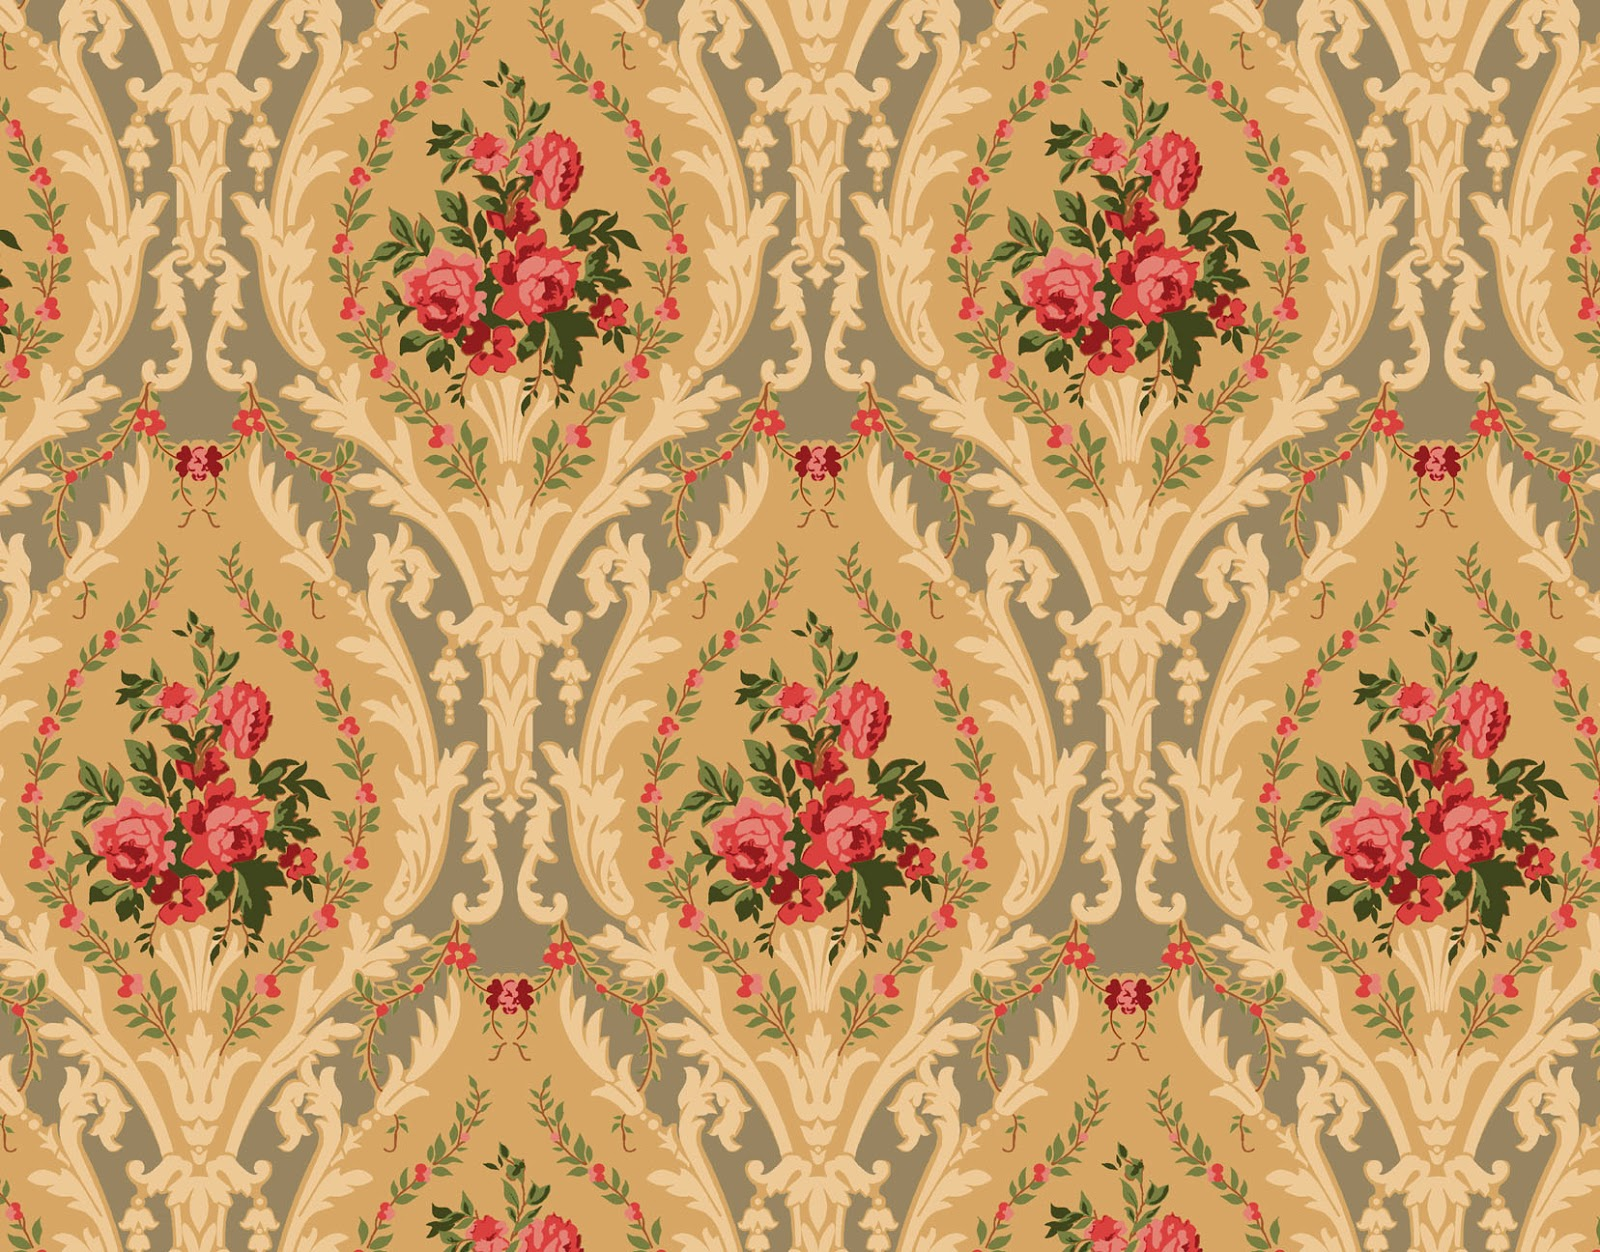 wallpaper victorian windows7 gold - photo #41